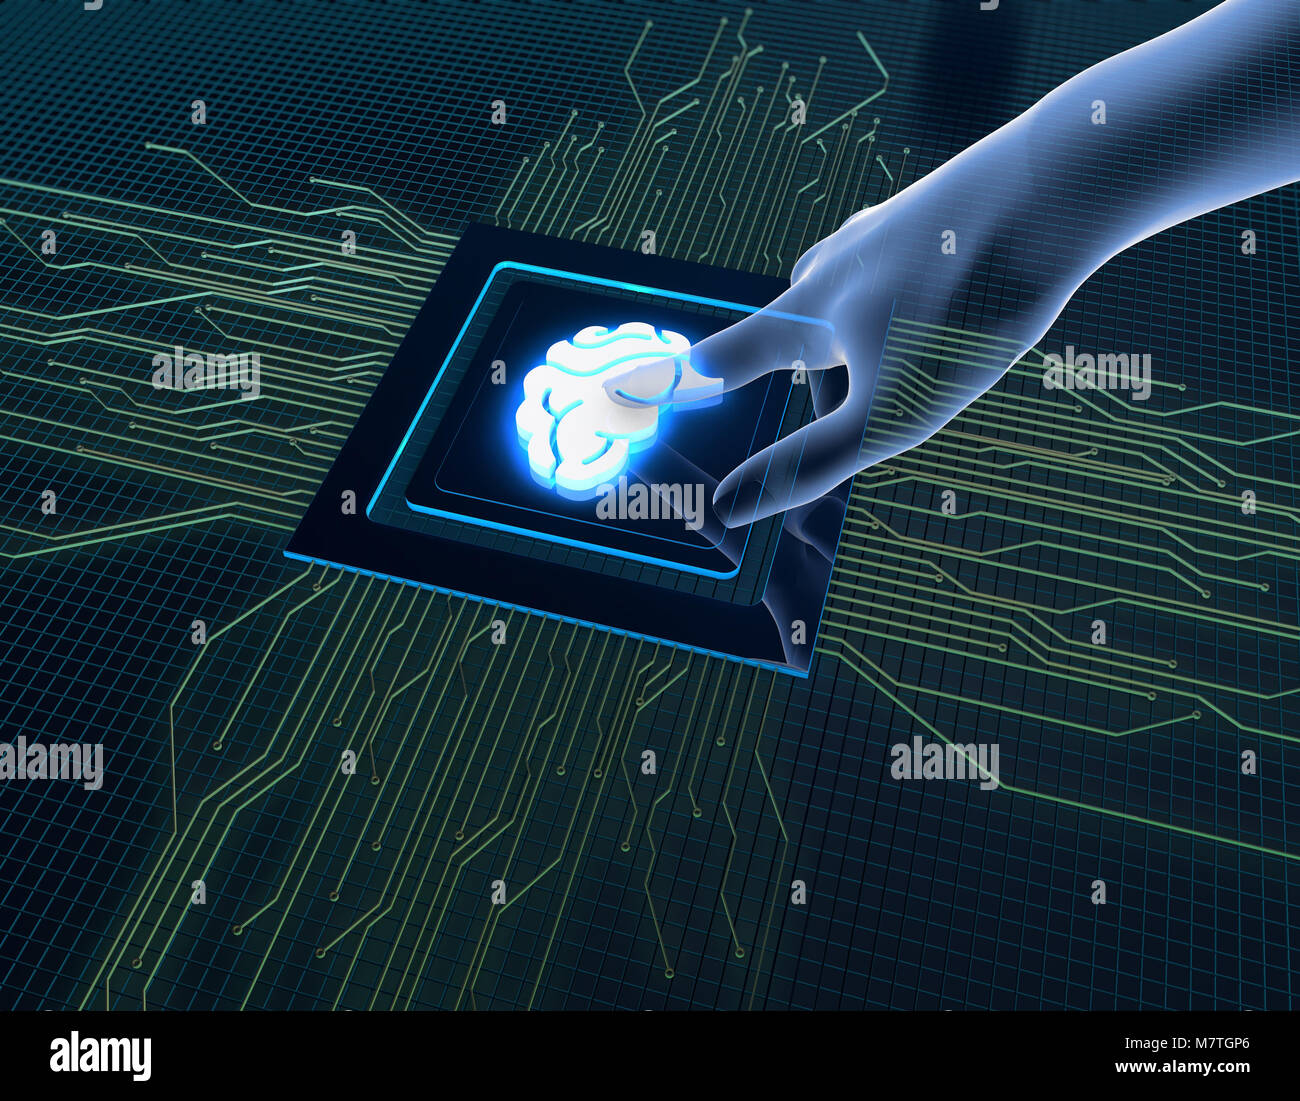 Human Science and Technology Intelligence, Electronic Circuit Processors, Smart Chips,cerebrum - Stock Image